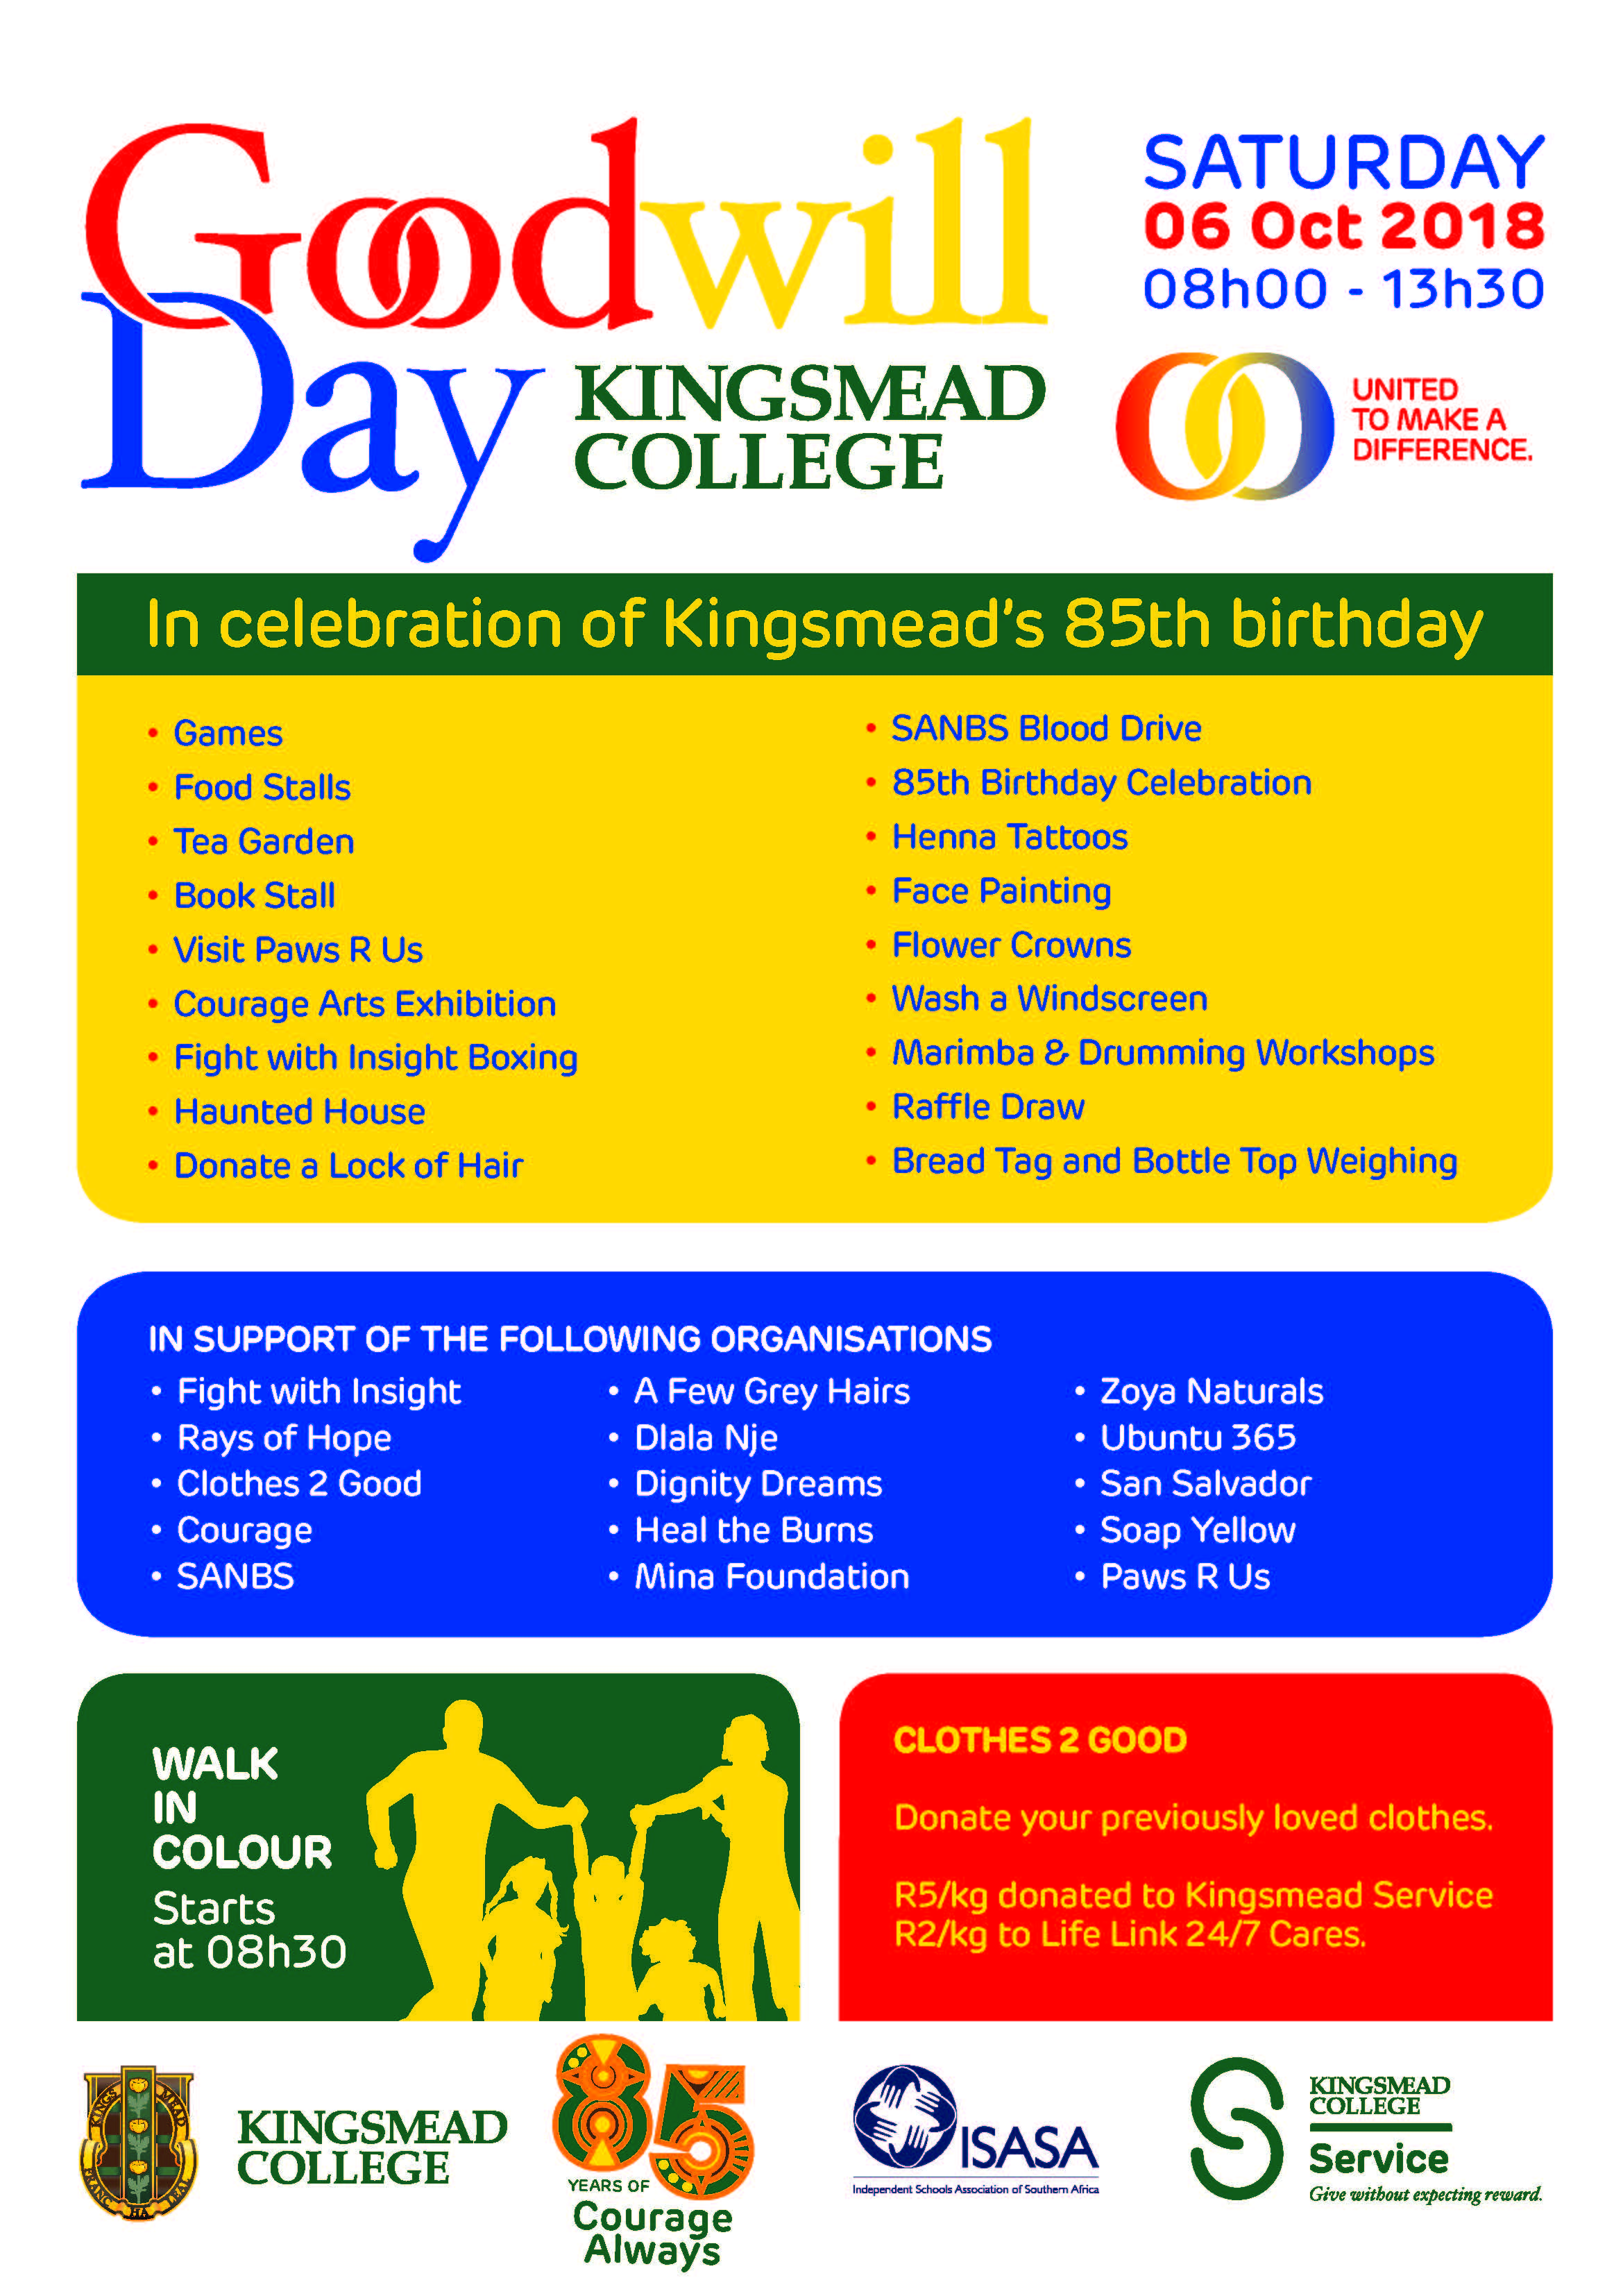 11890 KM Goodwill day 2018 A3Poster updated Kingsmead College